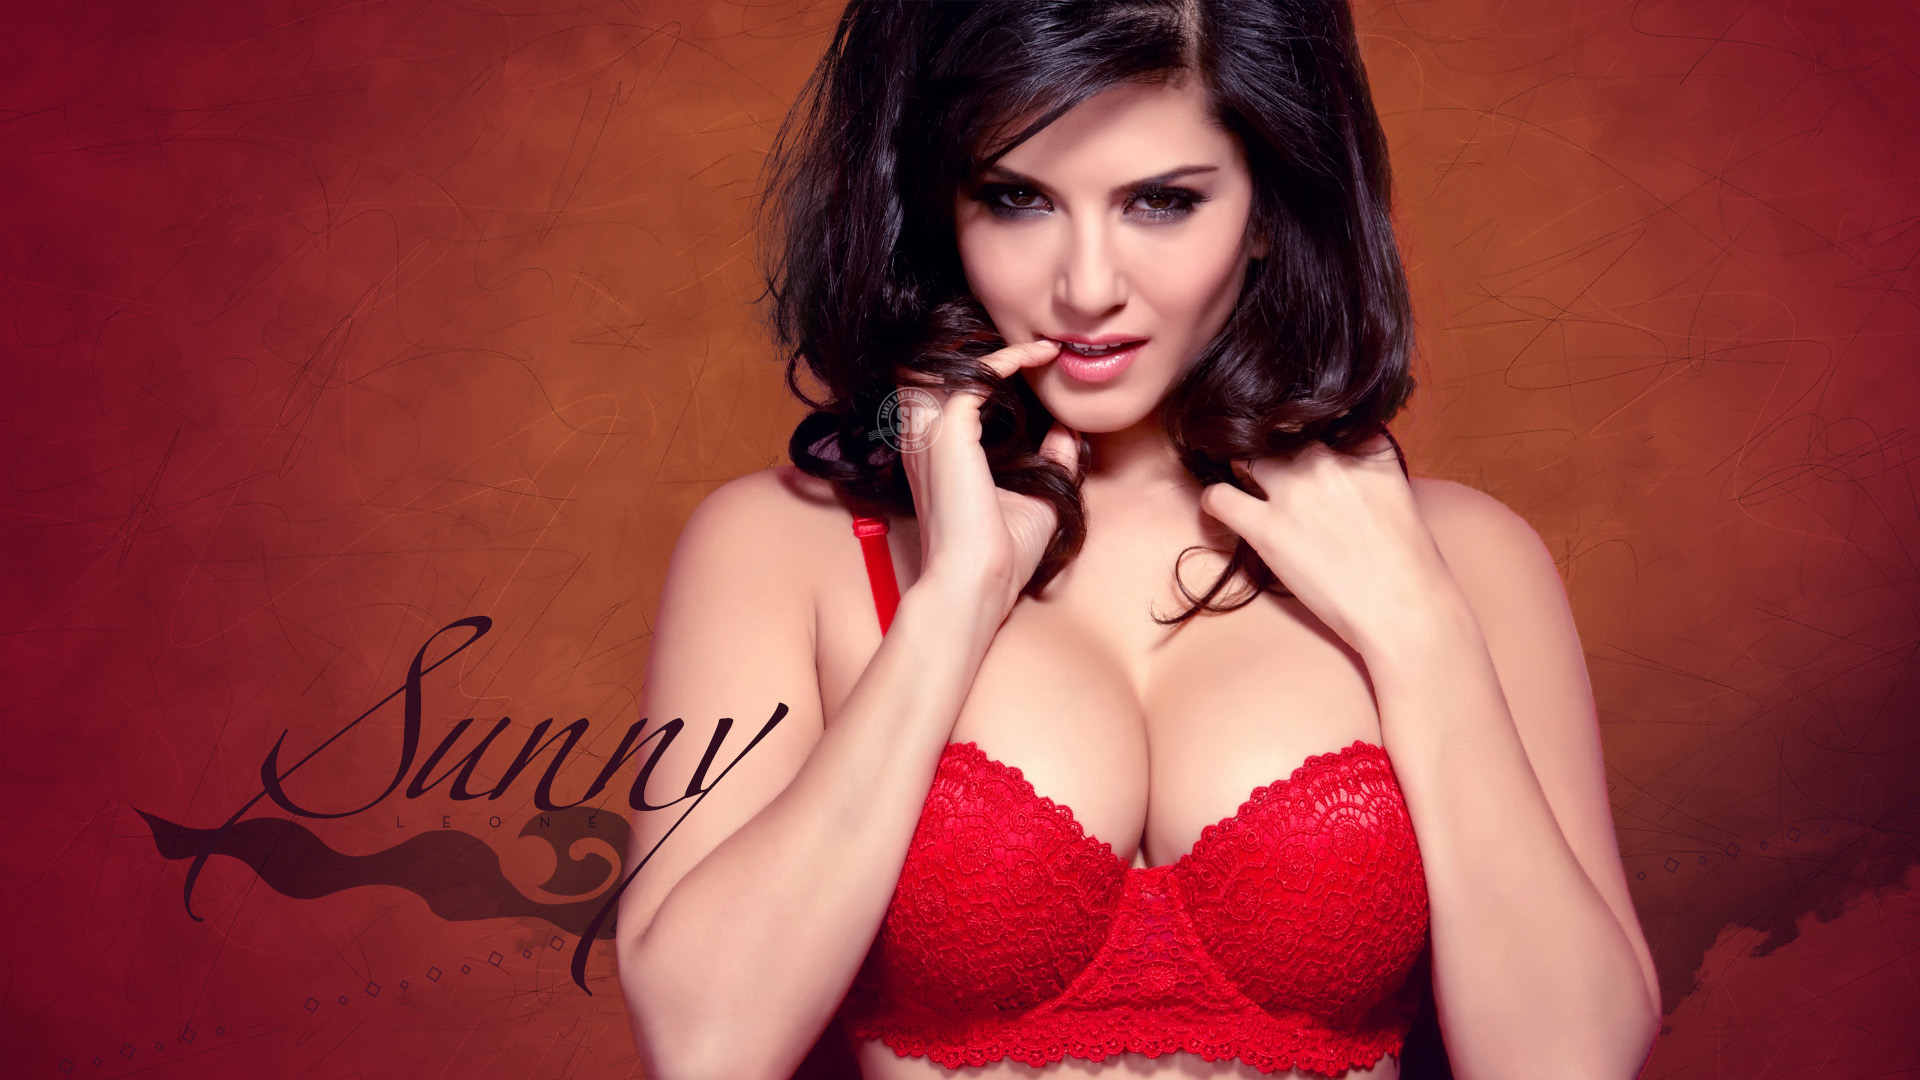 Top 10 hottest foreign actresses in Bollywood - Sunny Leone